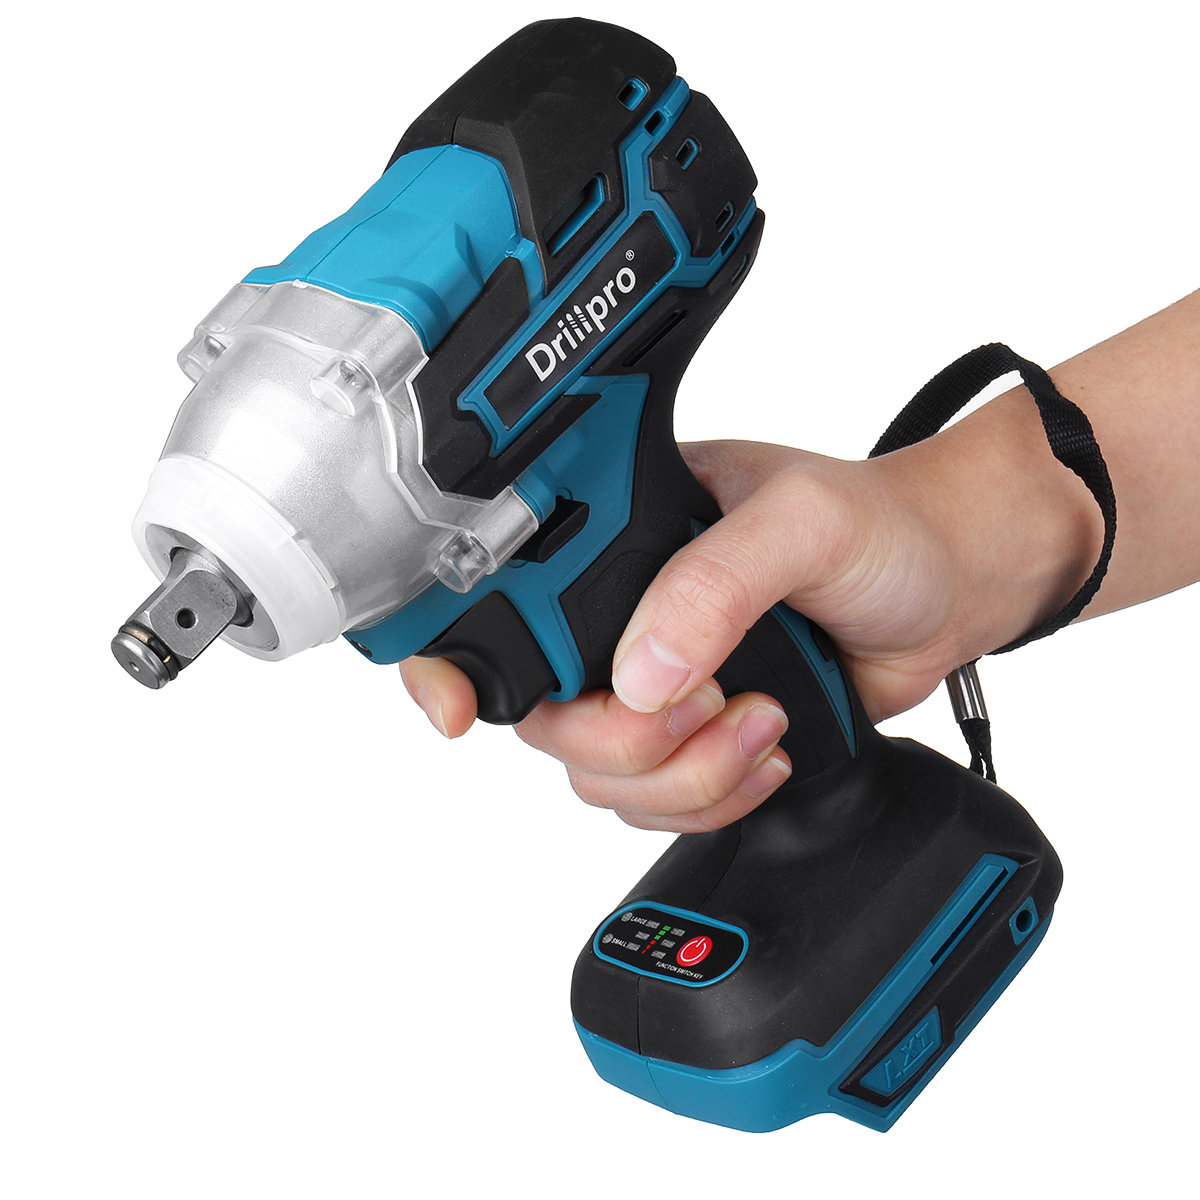 18V 280N m Cordless Impact Wrench Driver Brushless Motor 1 2inch Square Electric Wrench With LED Light Adapted To Makita DTW285Z